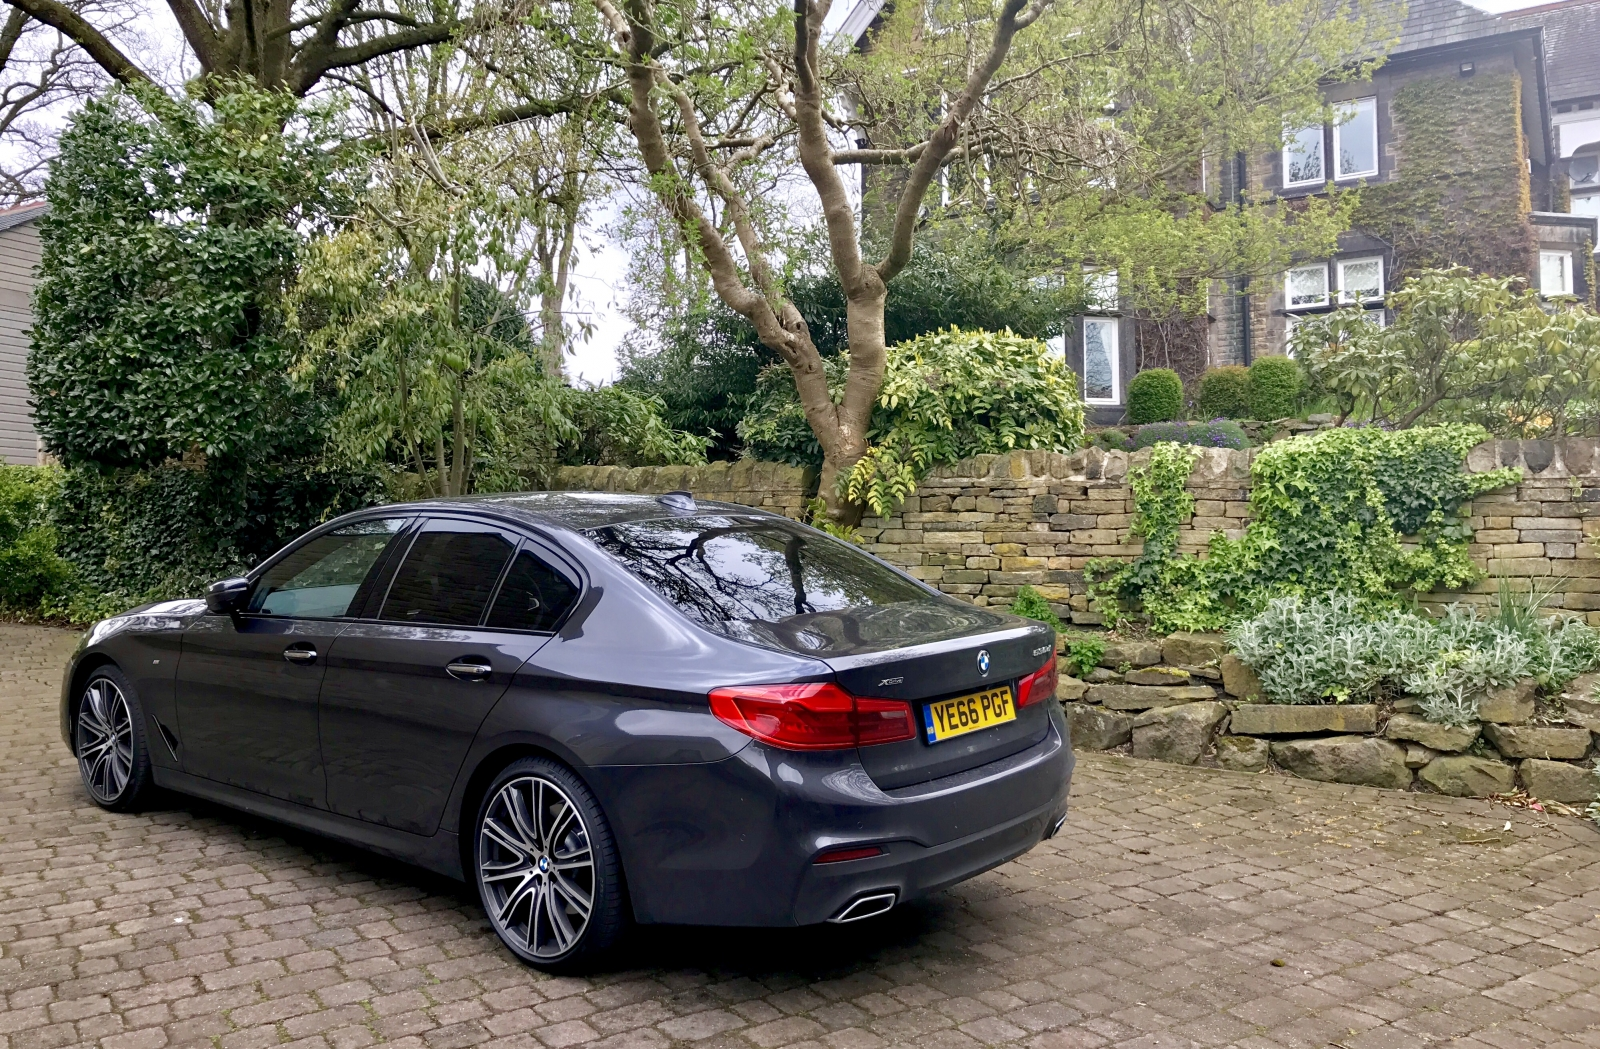 BMW 5 Series 2017 Review The Car You Can Drive With No One Inside